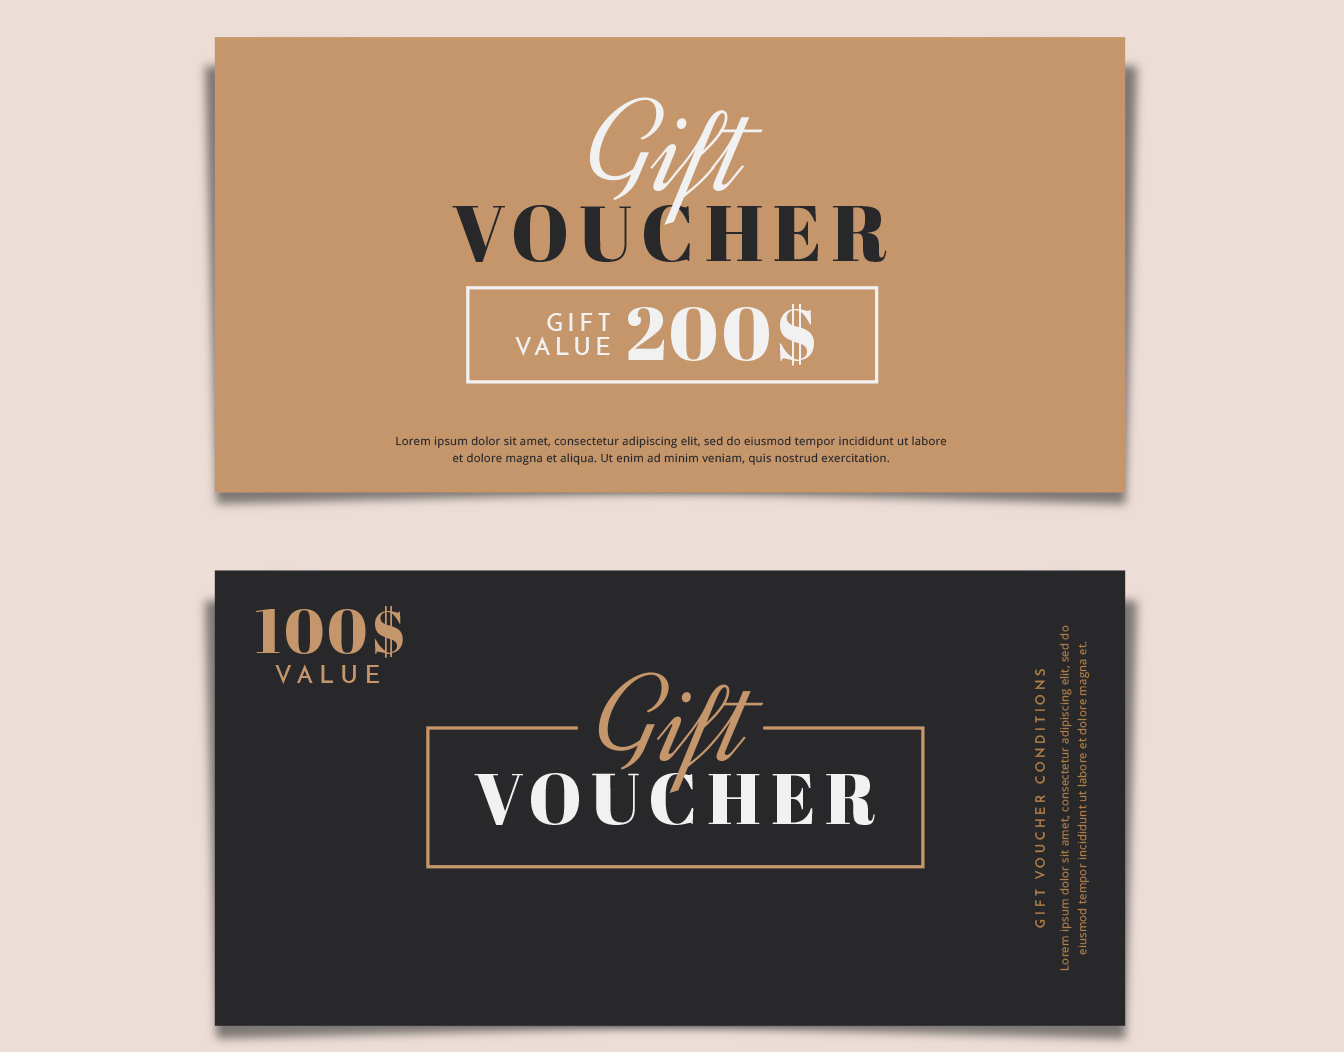 Two matching gift vouchers with discount offer